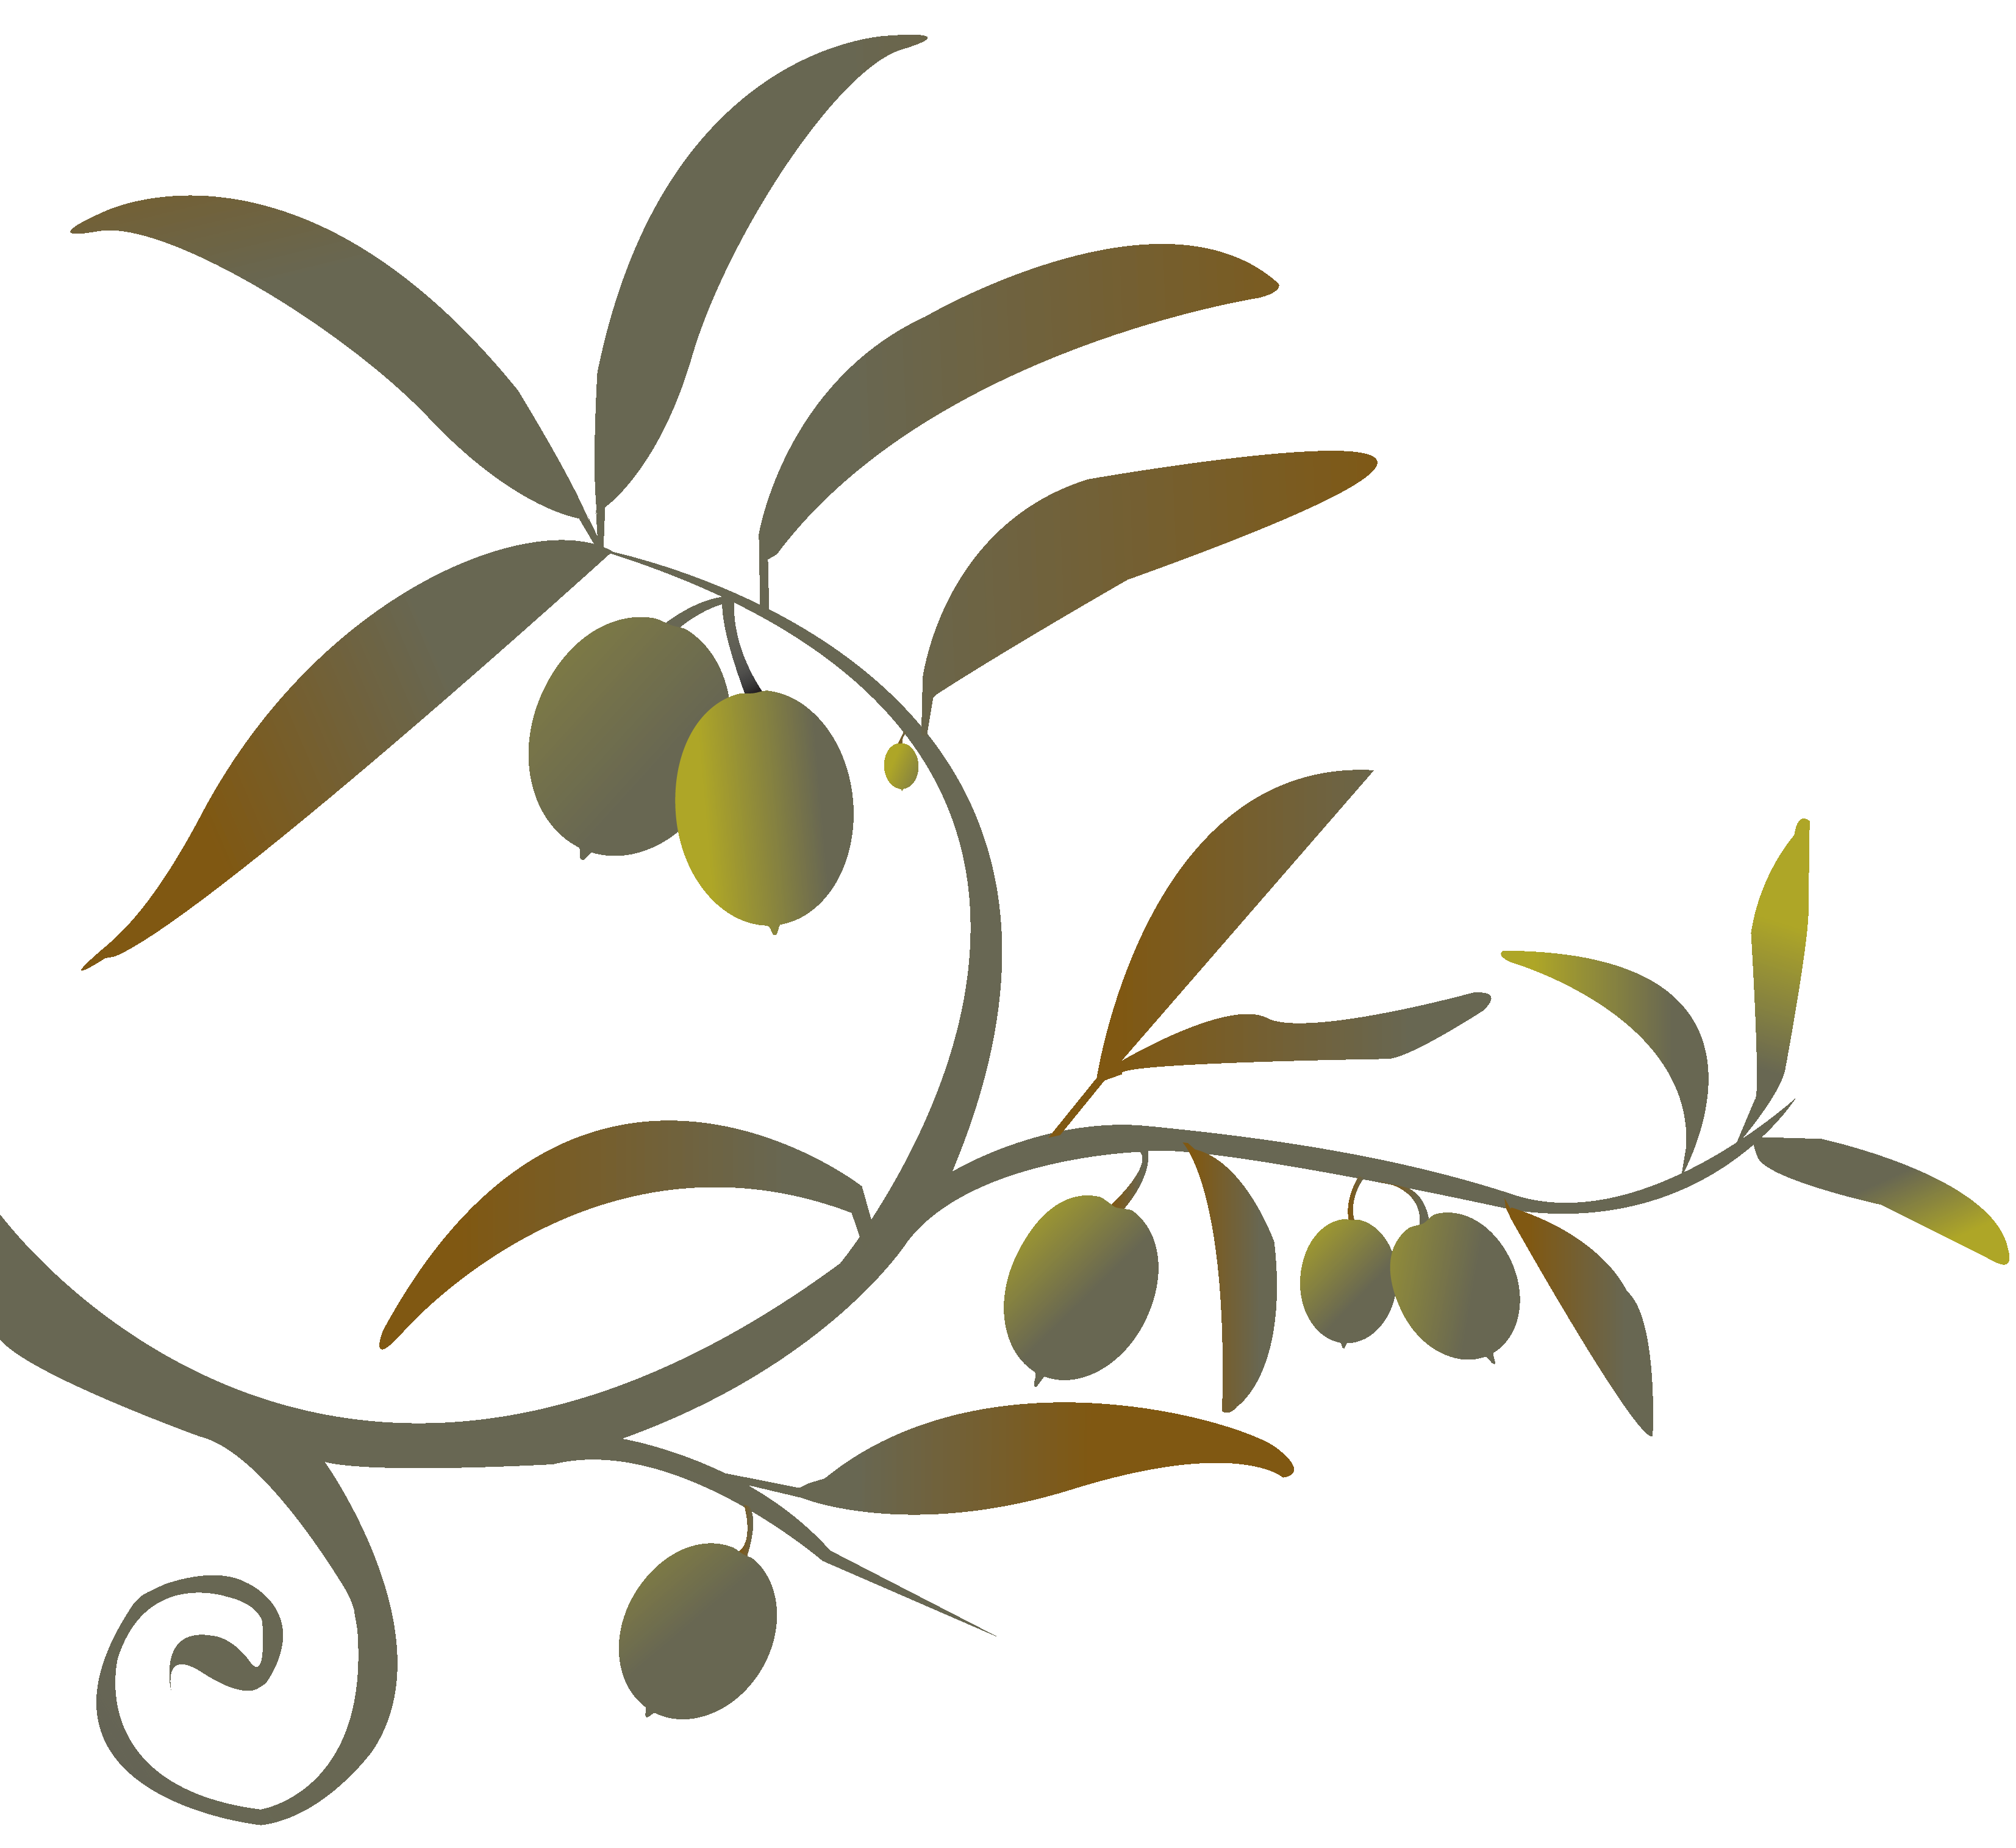 Decision tree clipart image freeuse library Deeply Connected - Sierra Pacific Synod image freeuse library